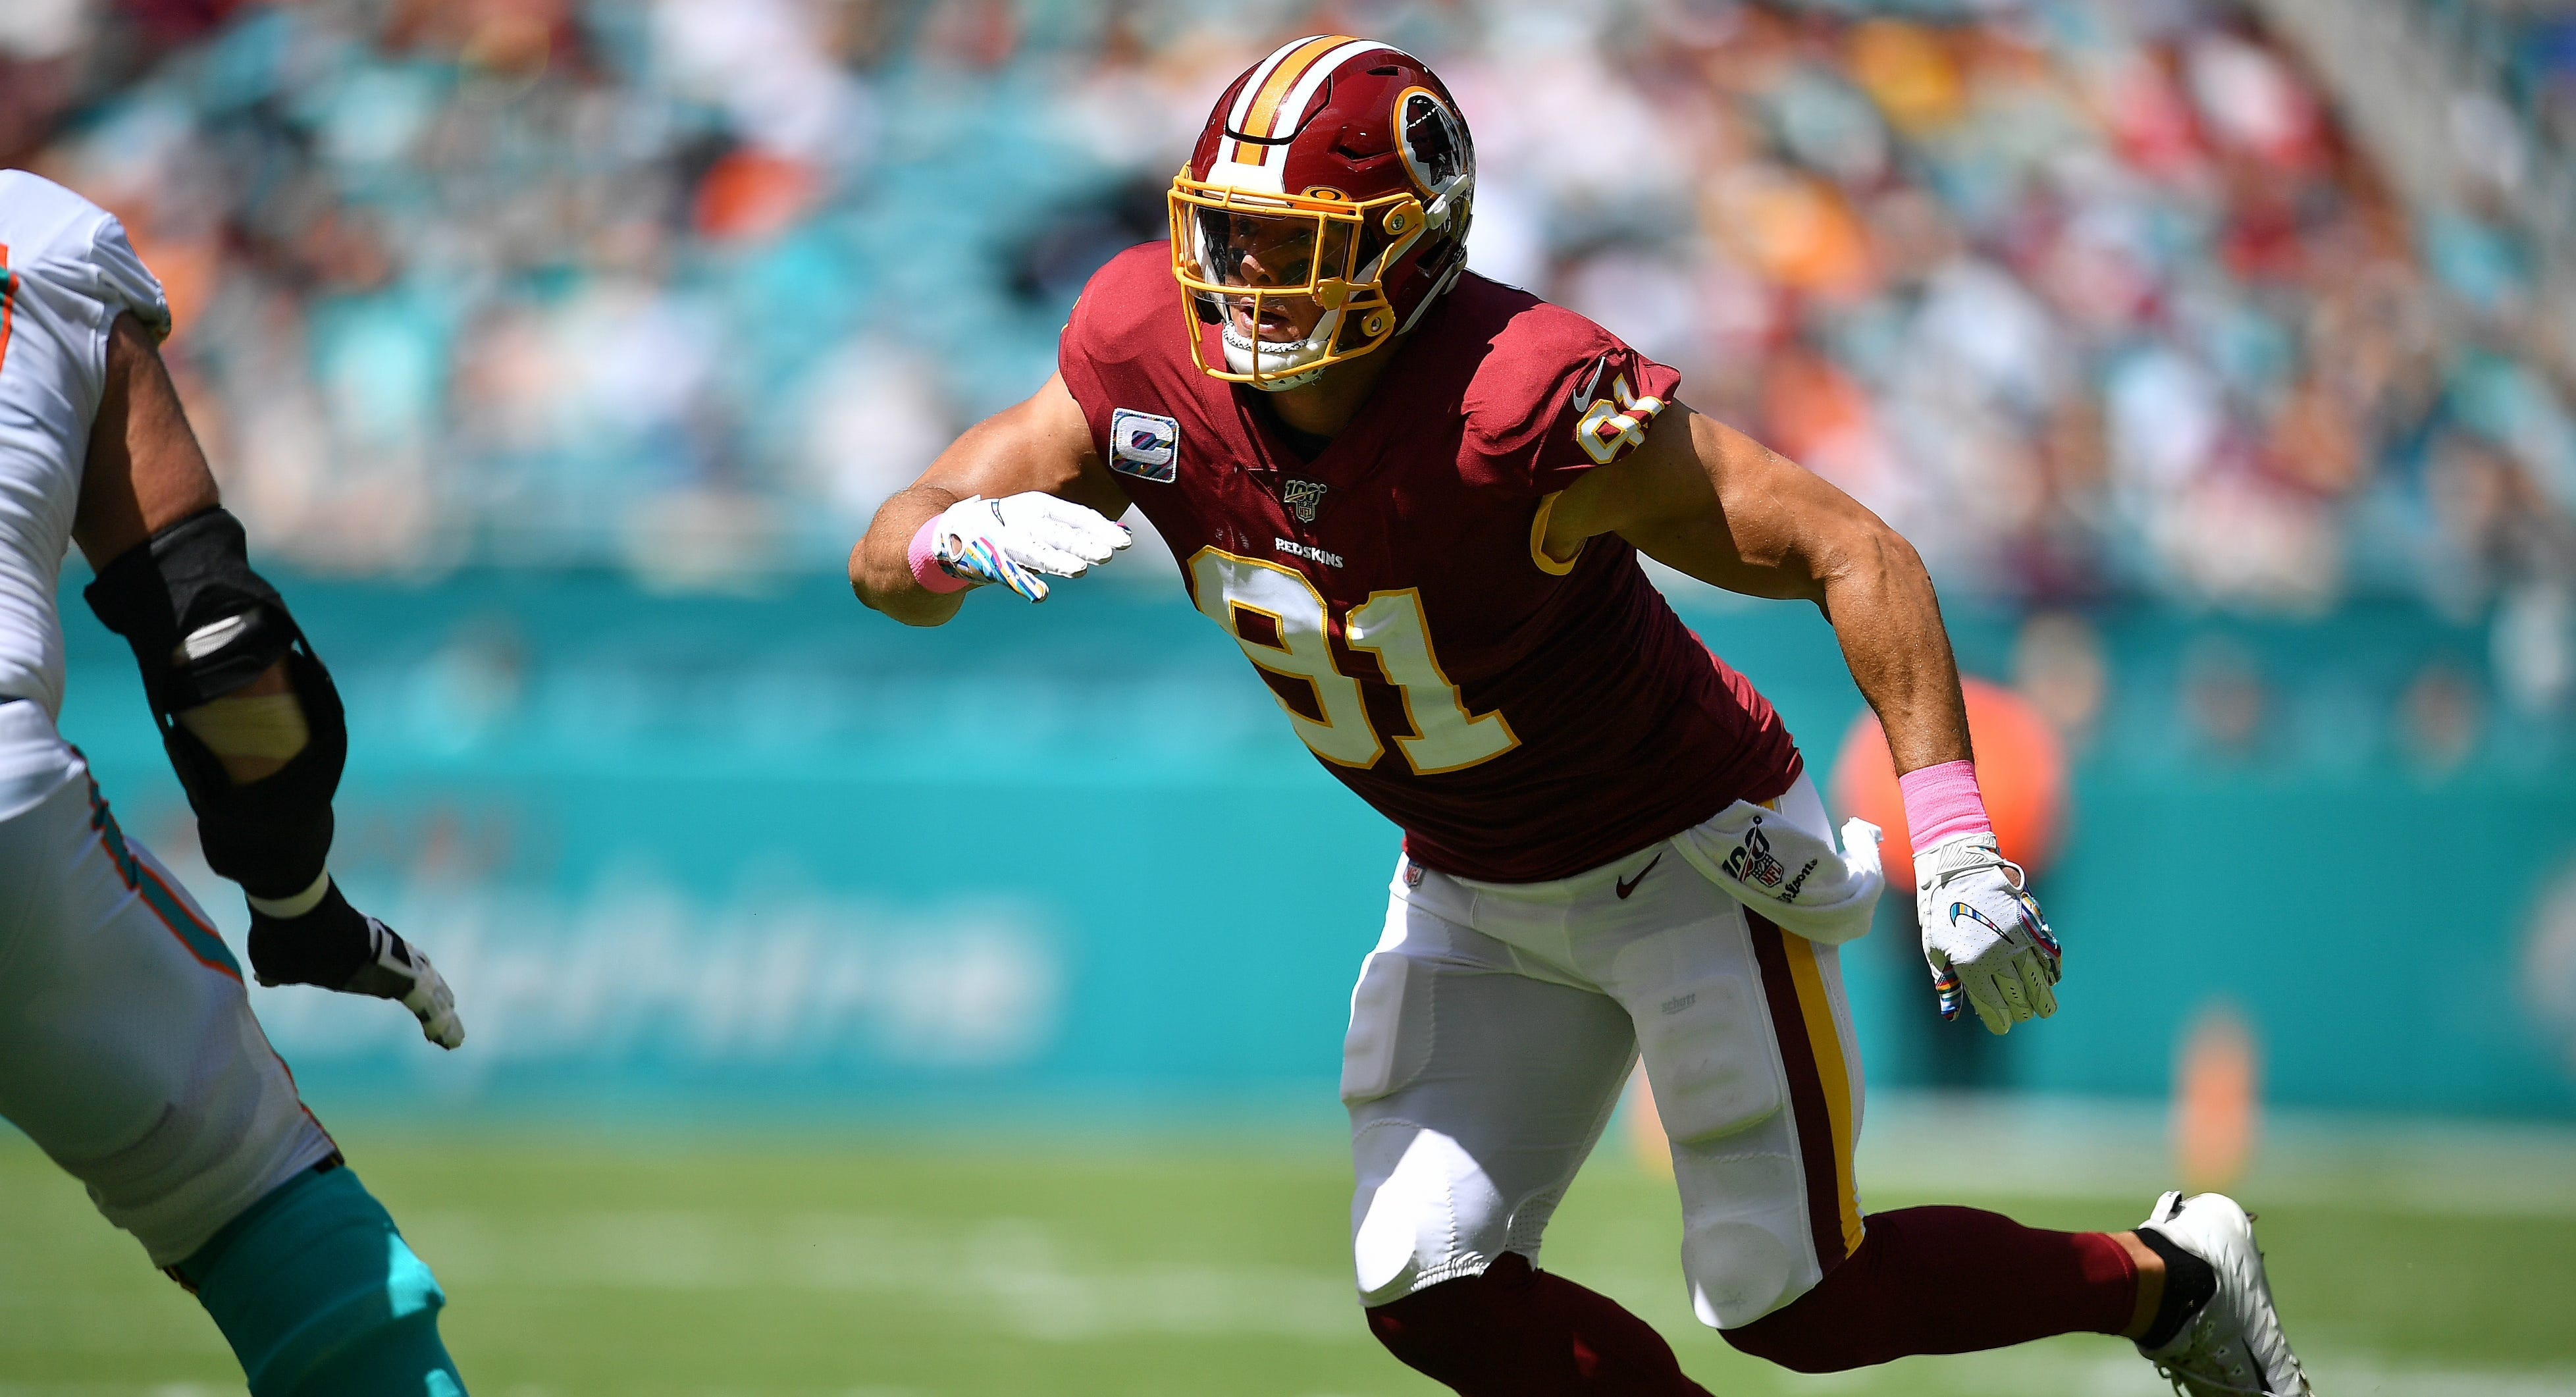 Will Redskins Cut Ryan Kerrigan Or Give Him An Extension